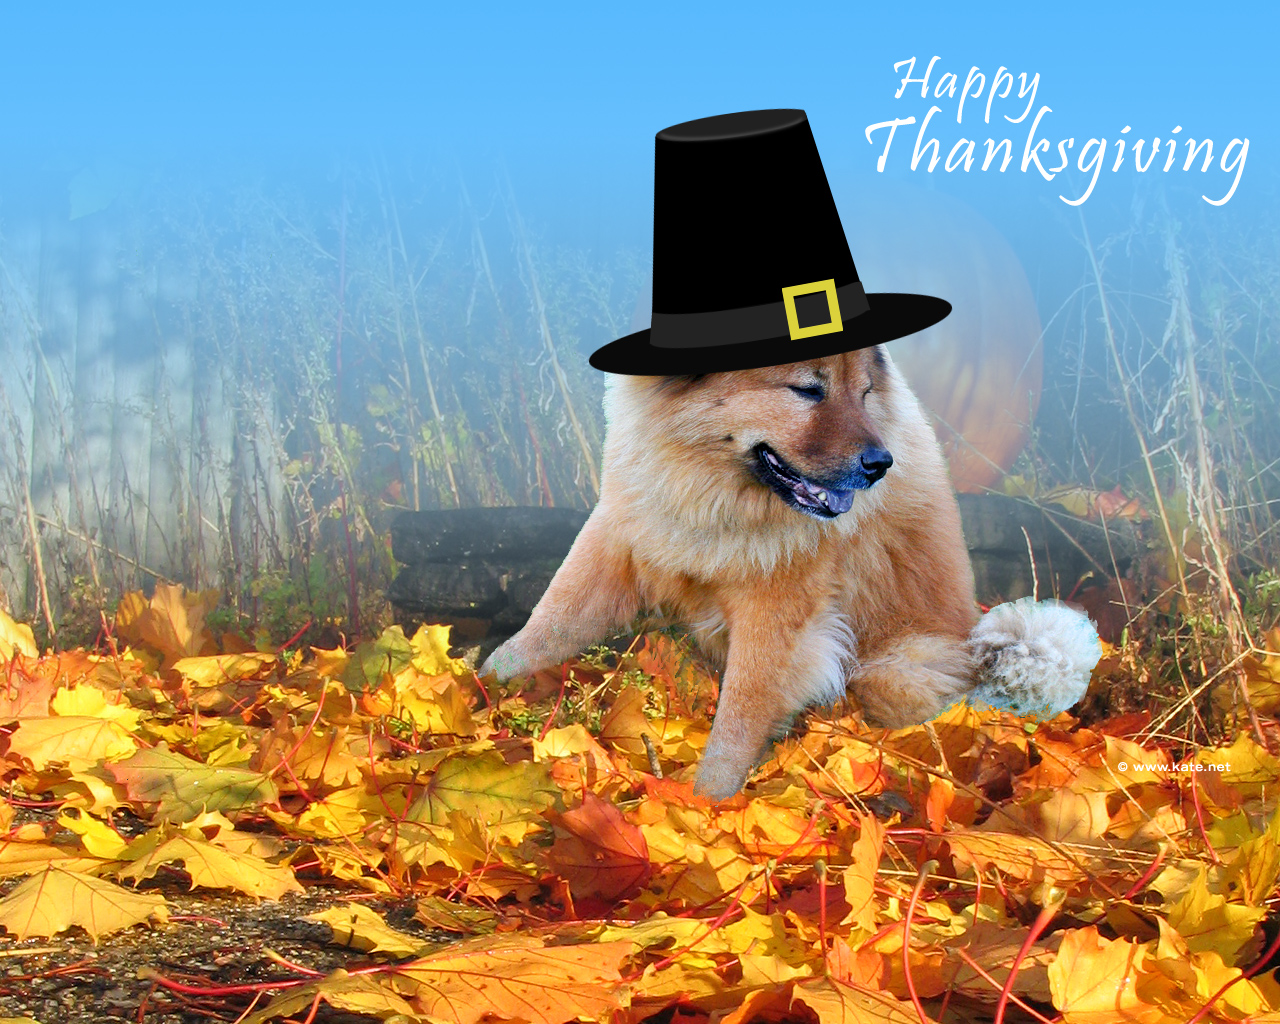 download desktop backgrounds thanksgiving desktop backgrounds 1280x1024